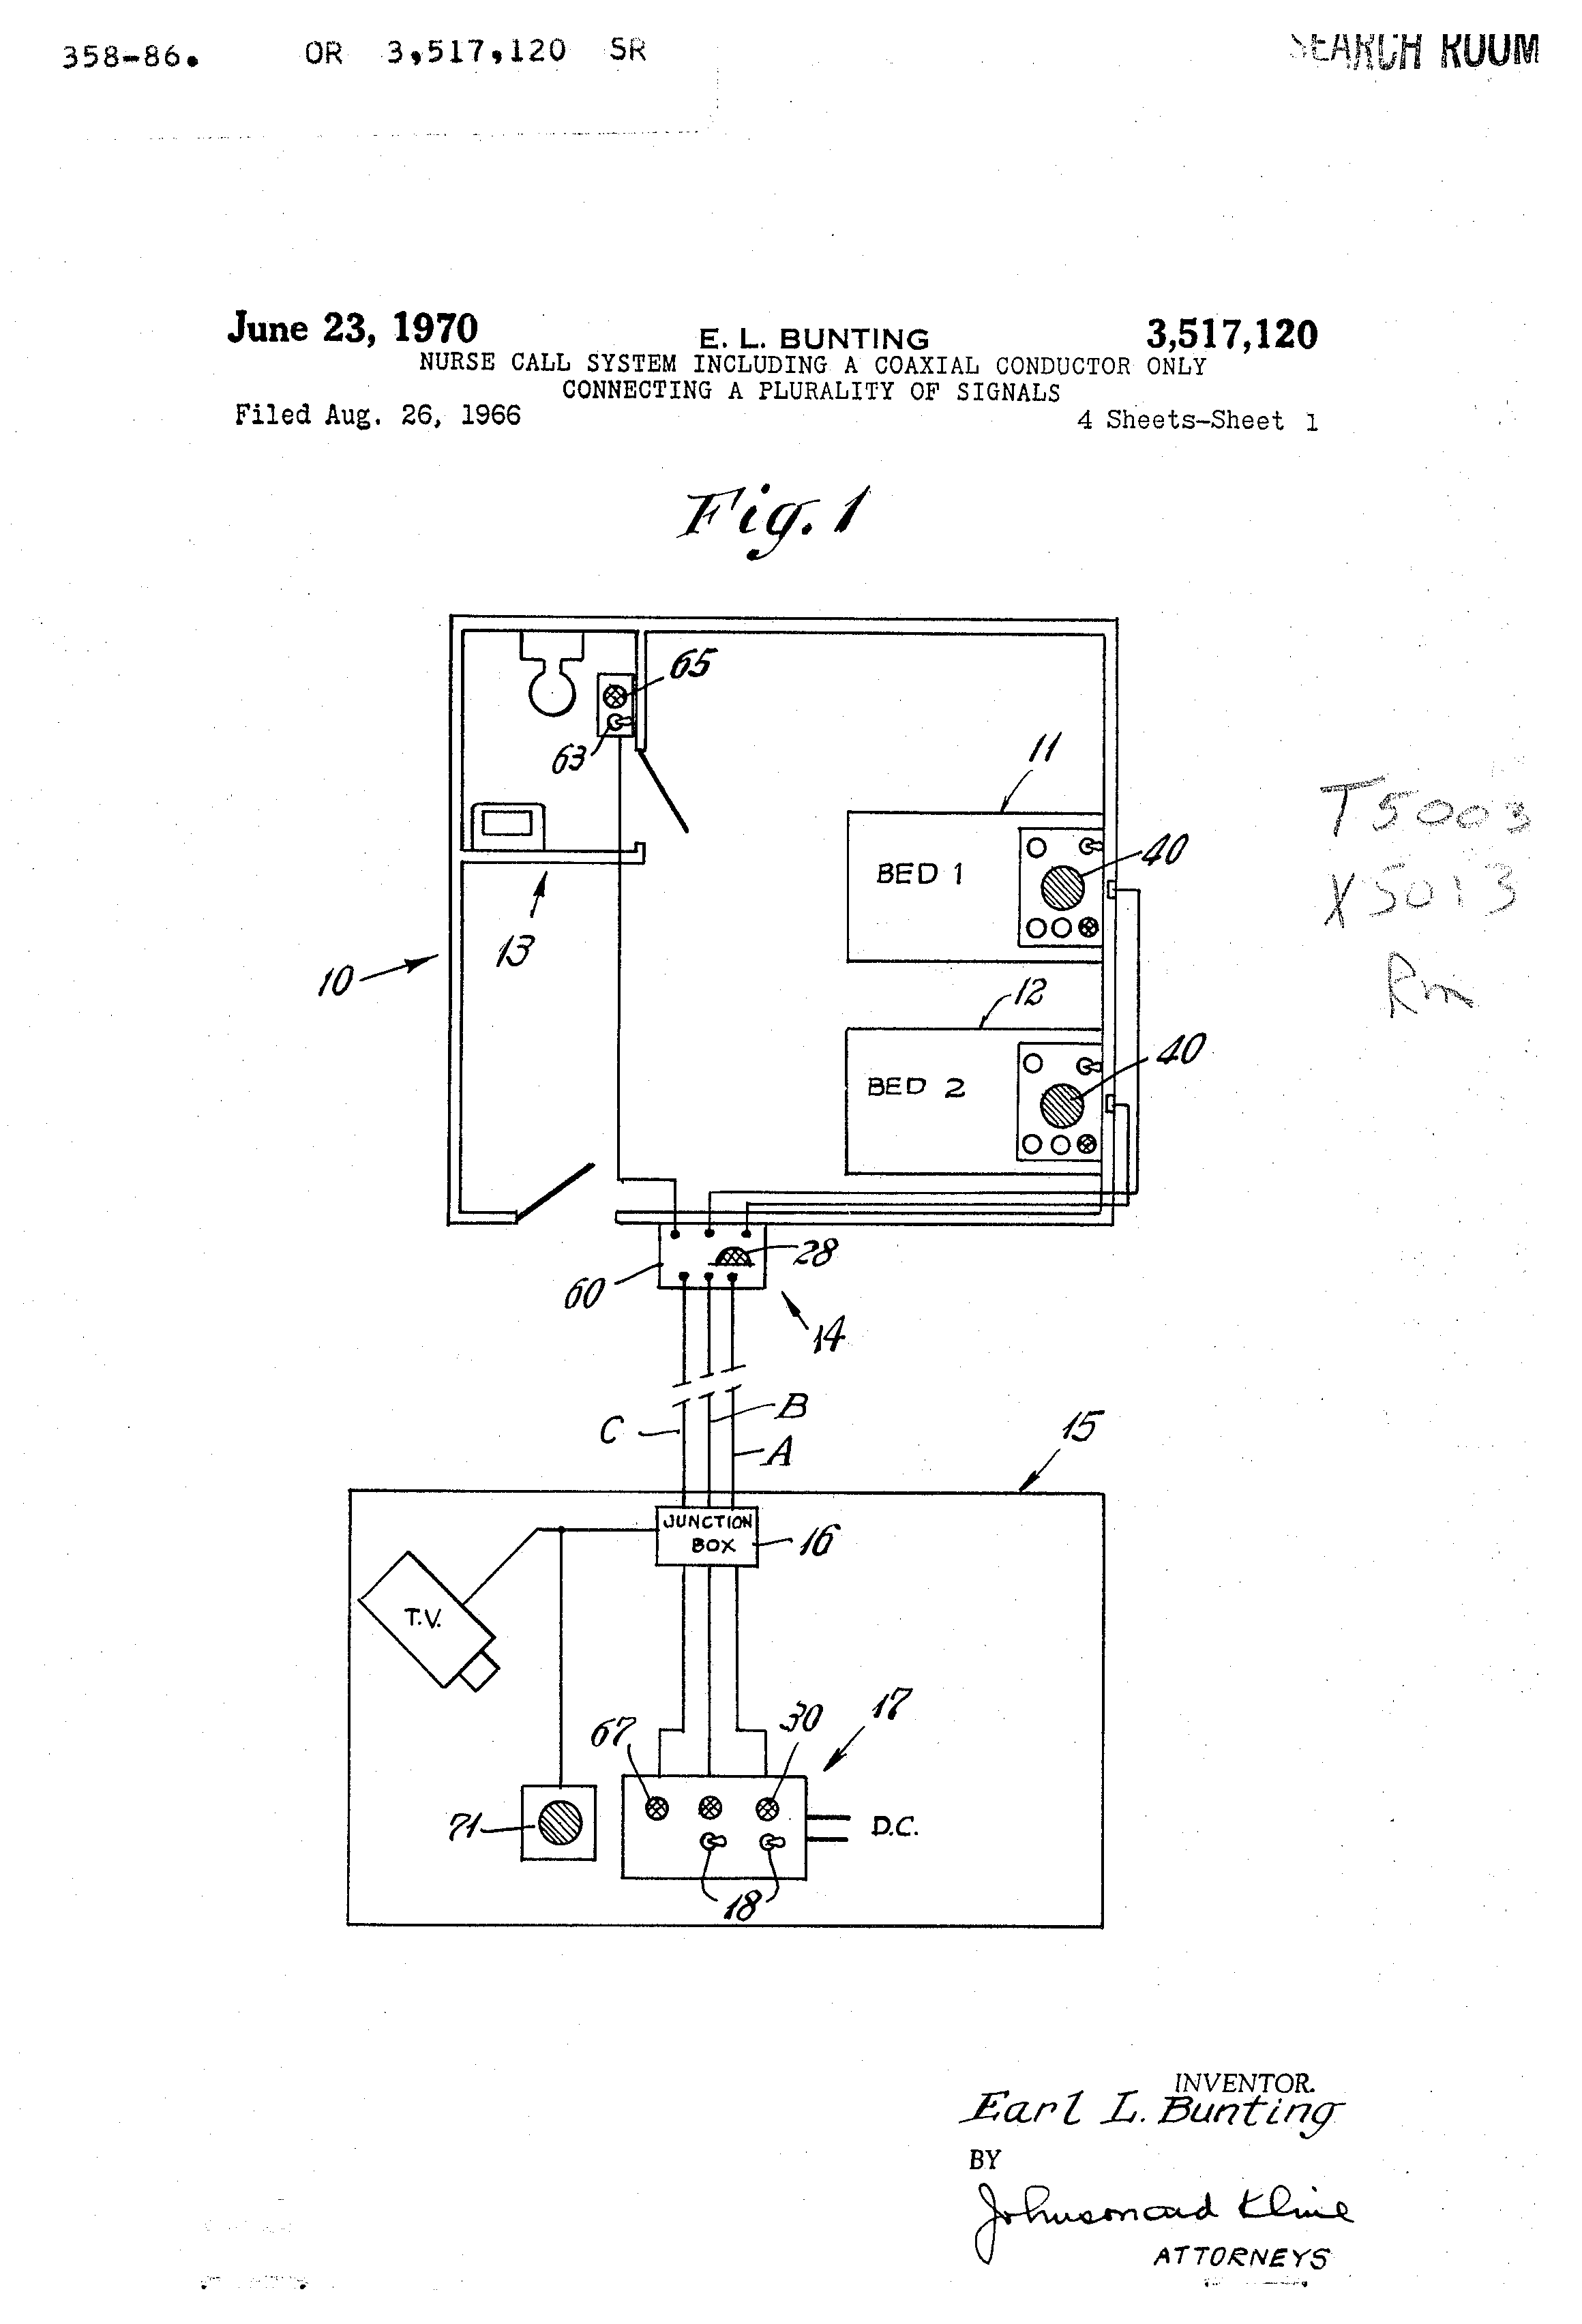 US3517120 0 patent us3517120 nurse call system including a coaxial conductor gamewell master box wire diagram at edmiracle.co